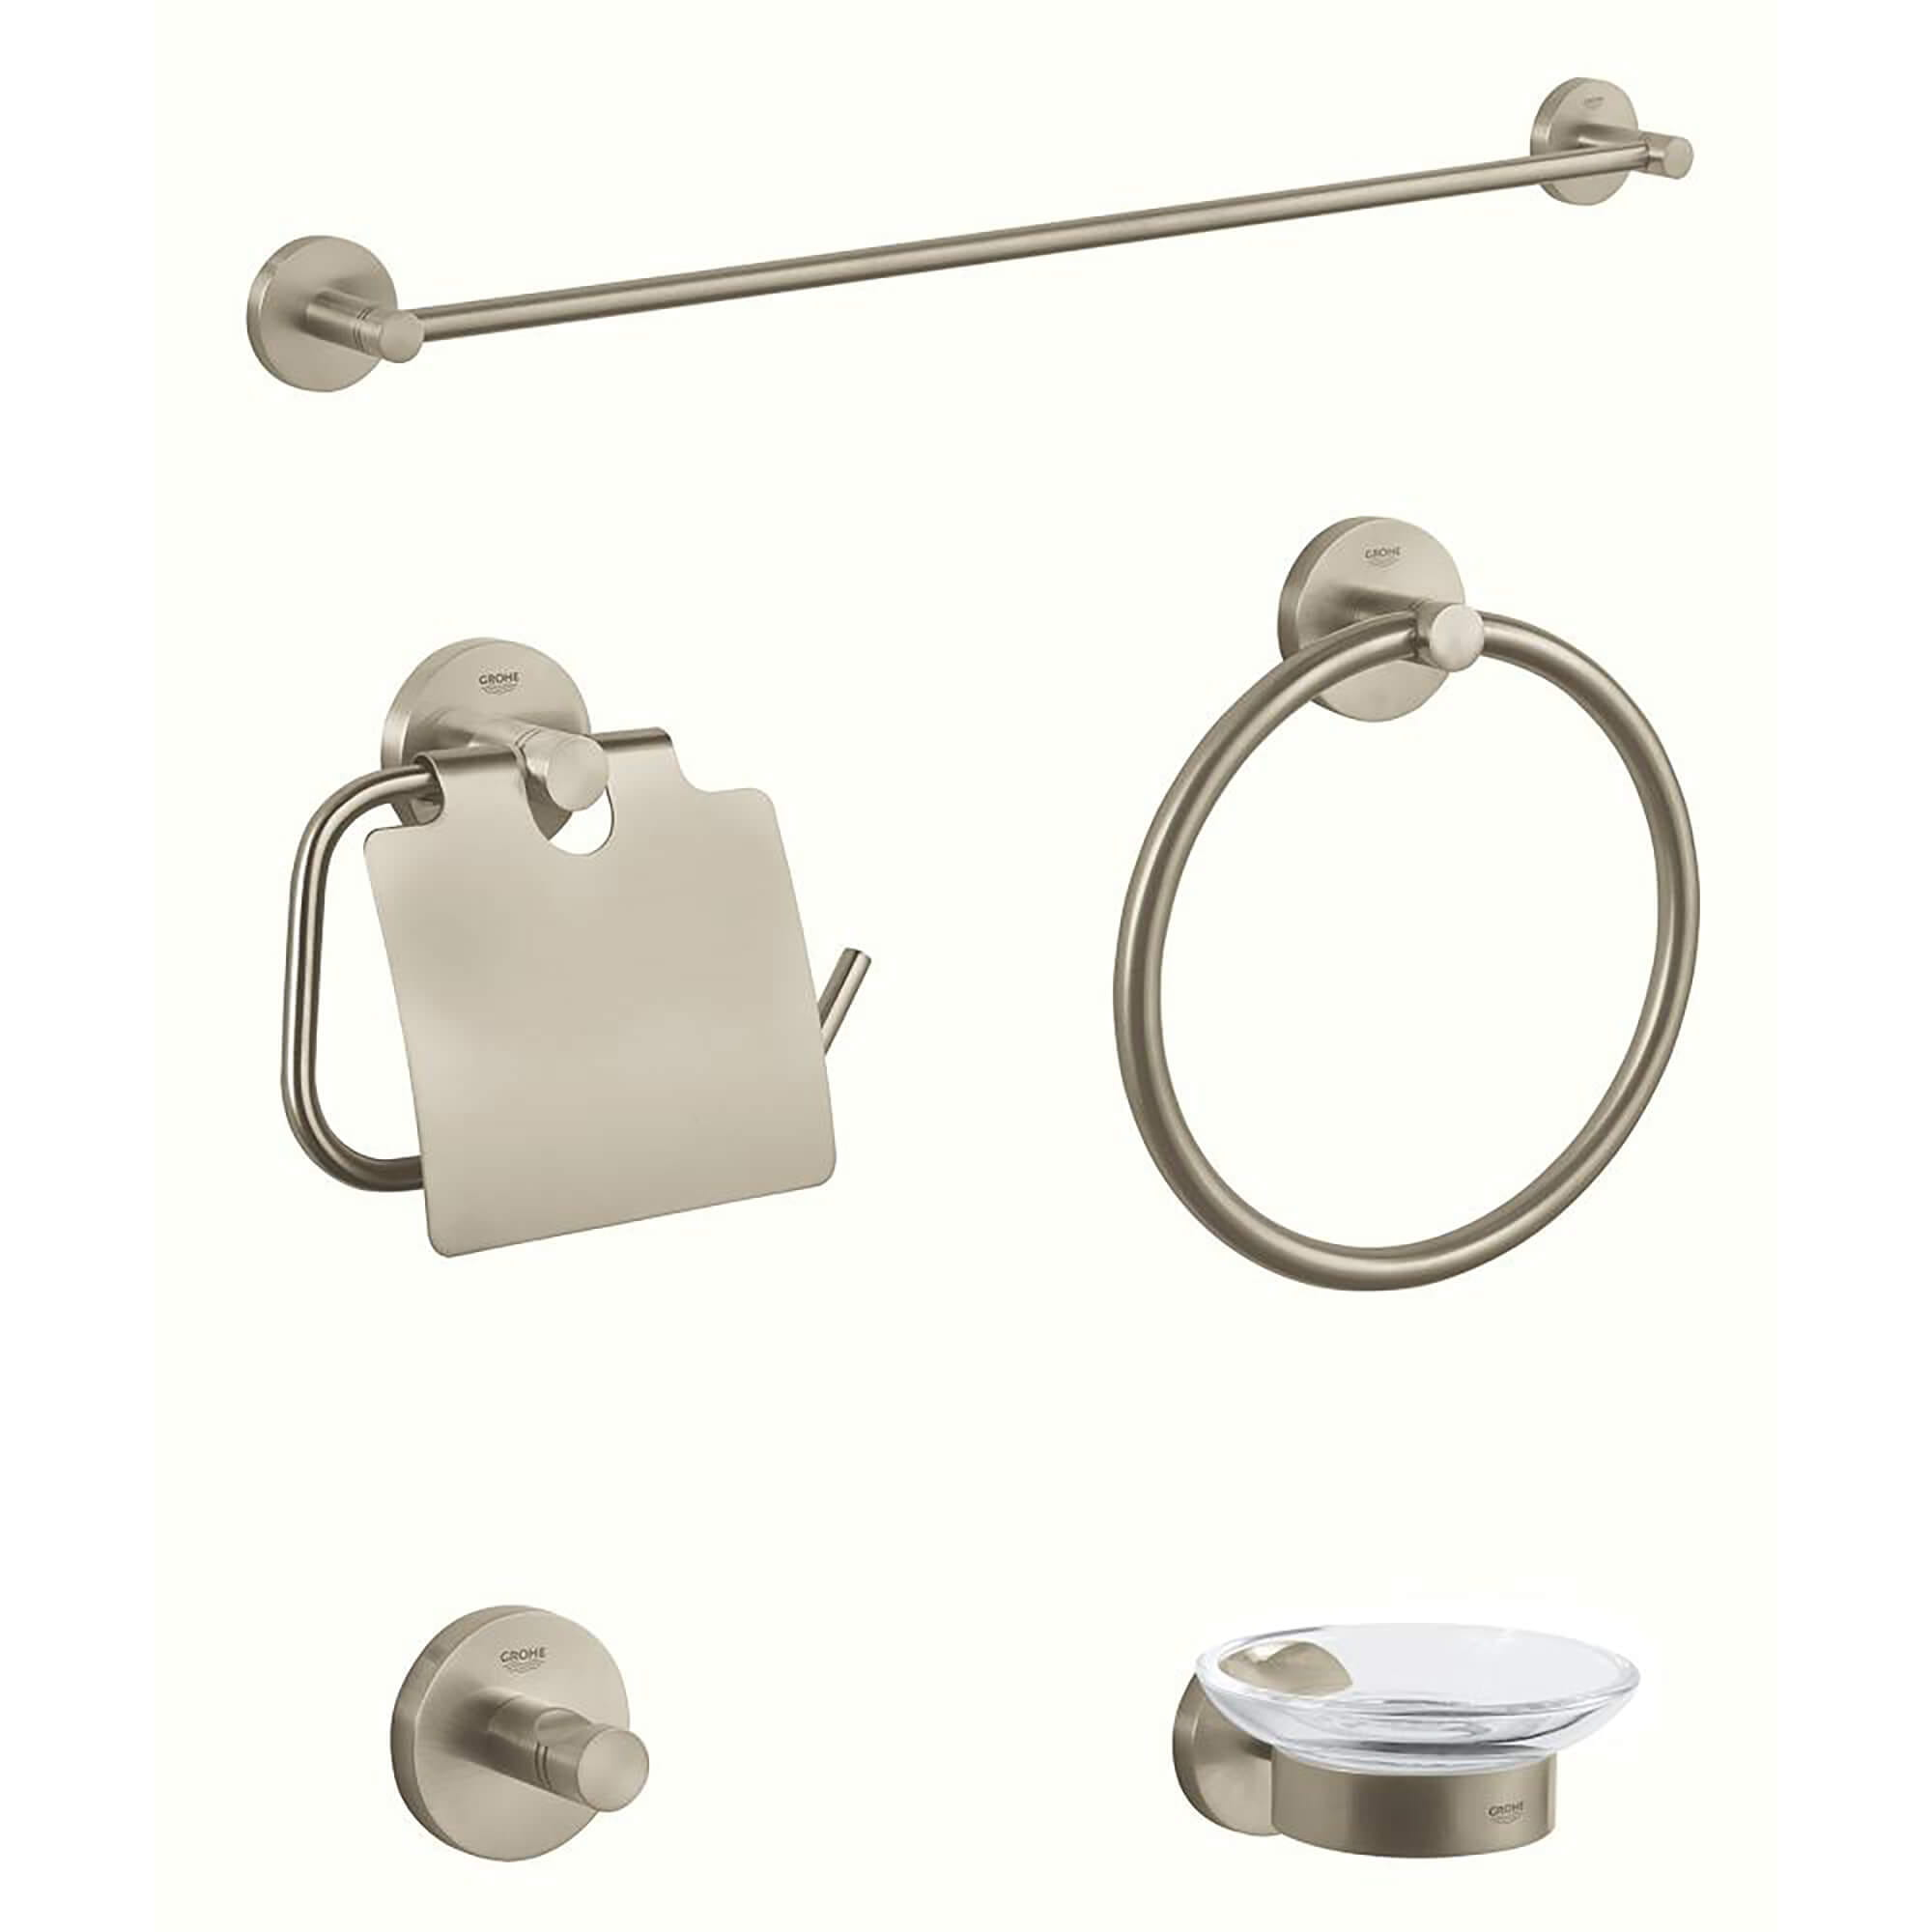 Accessory Set GROHE BRUSHED NICKEL